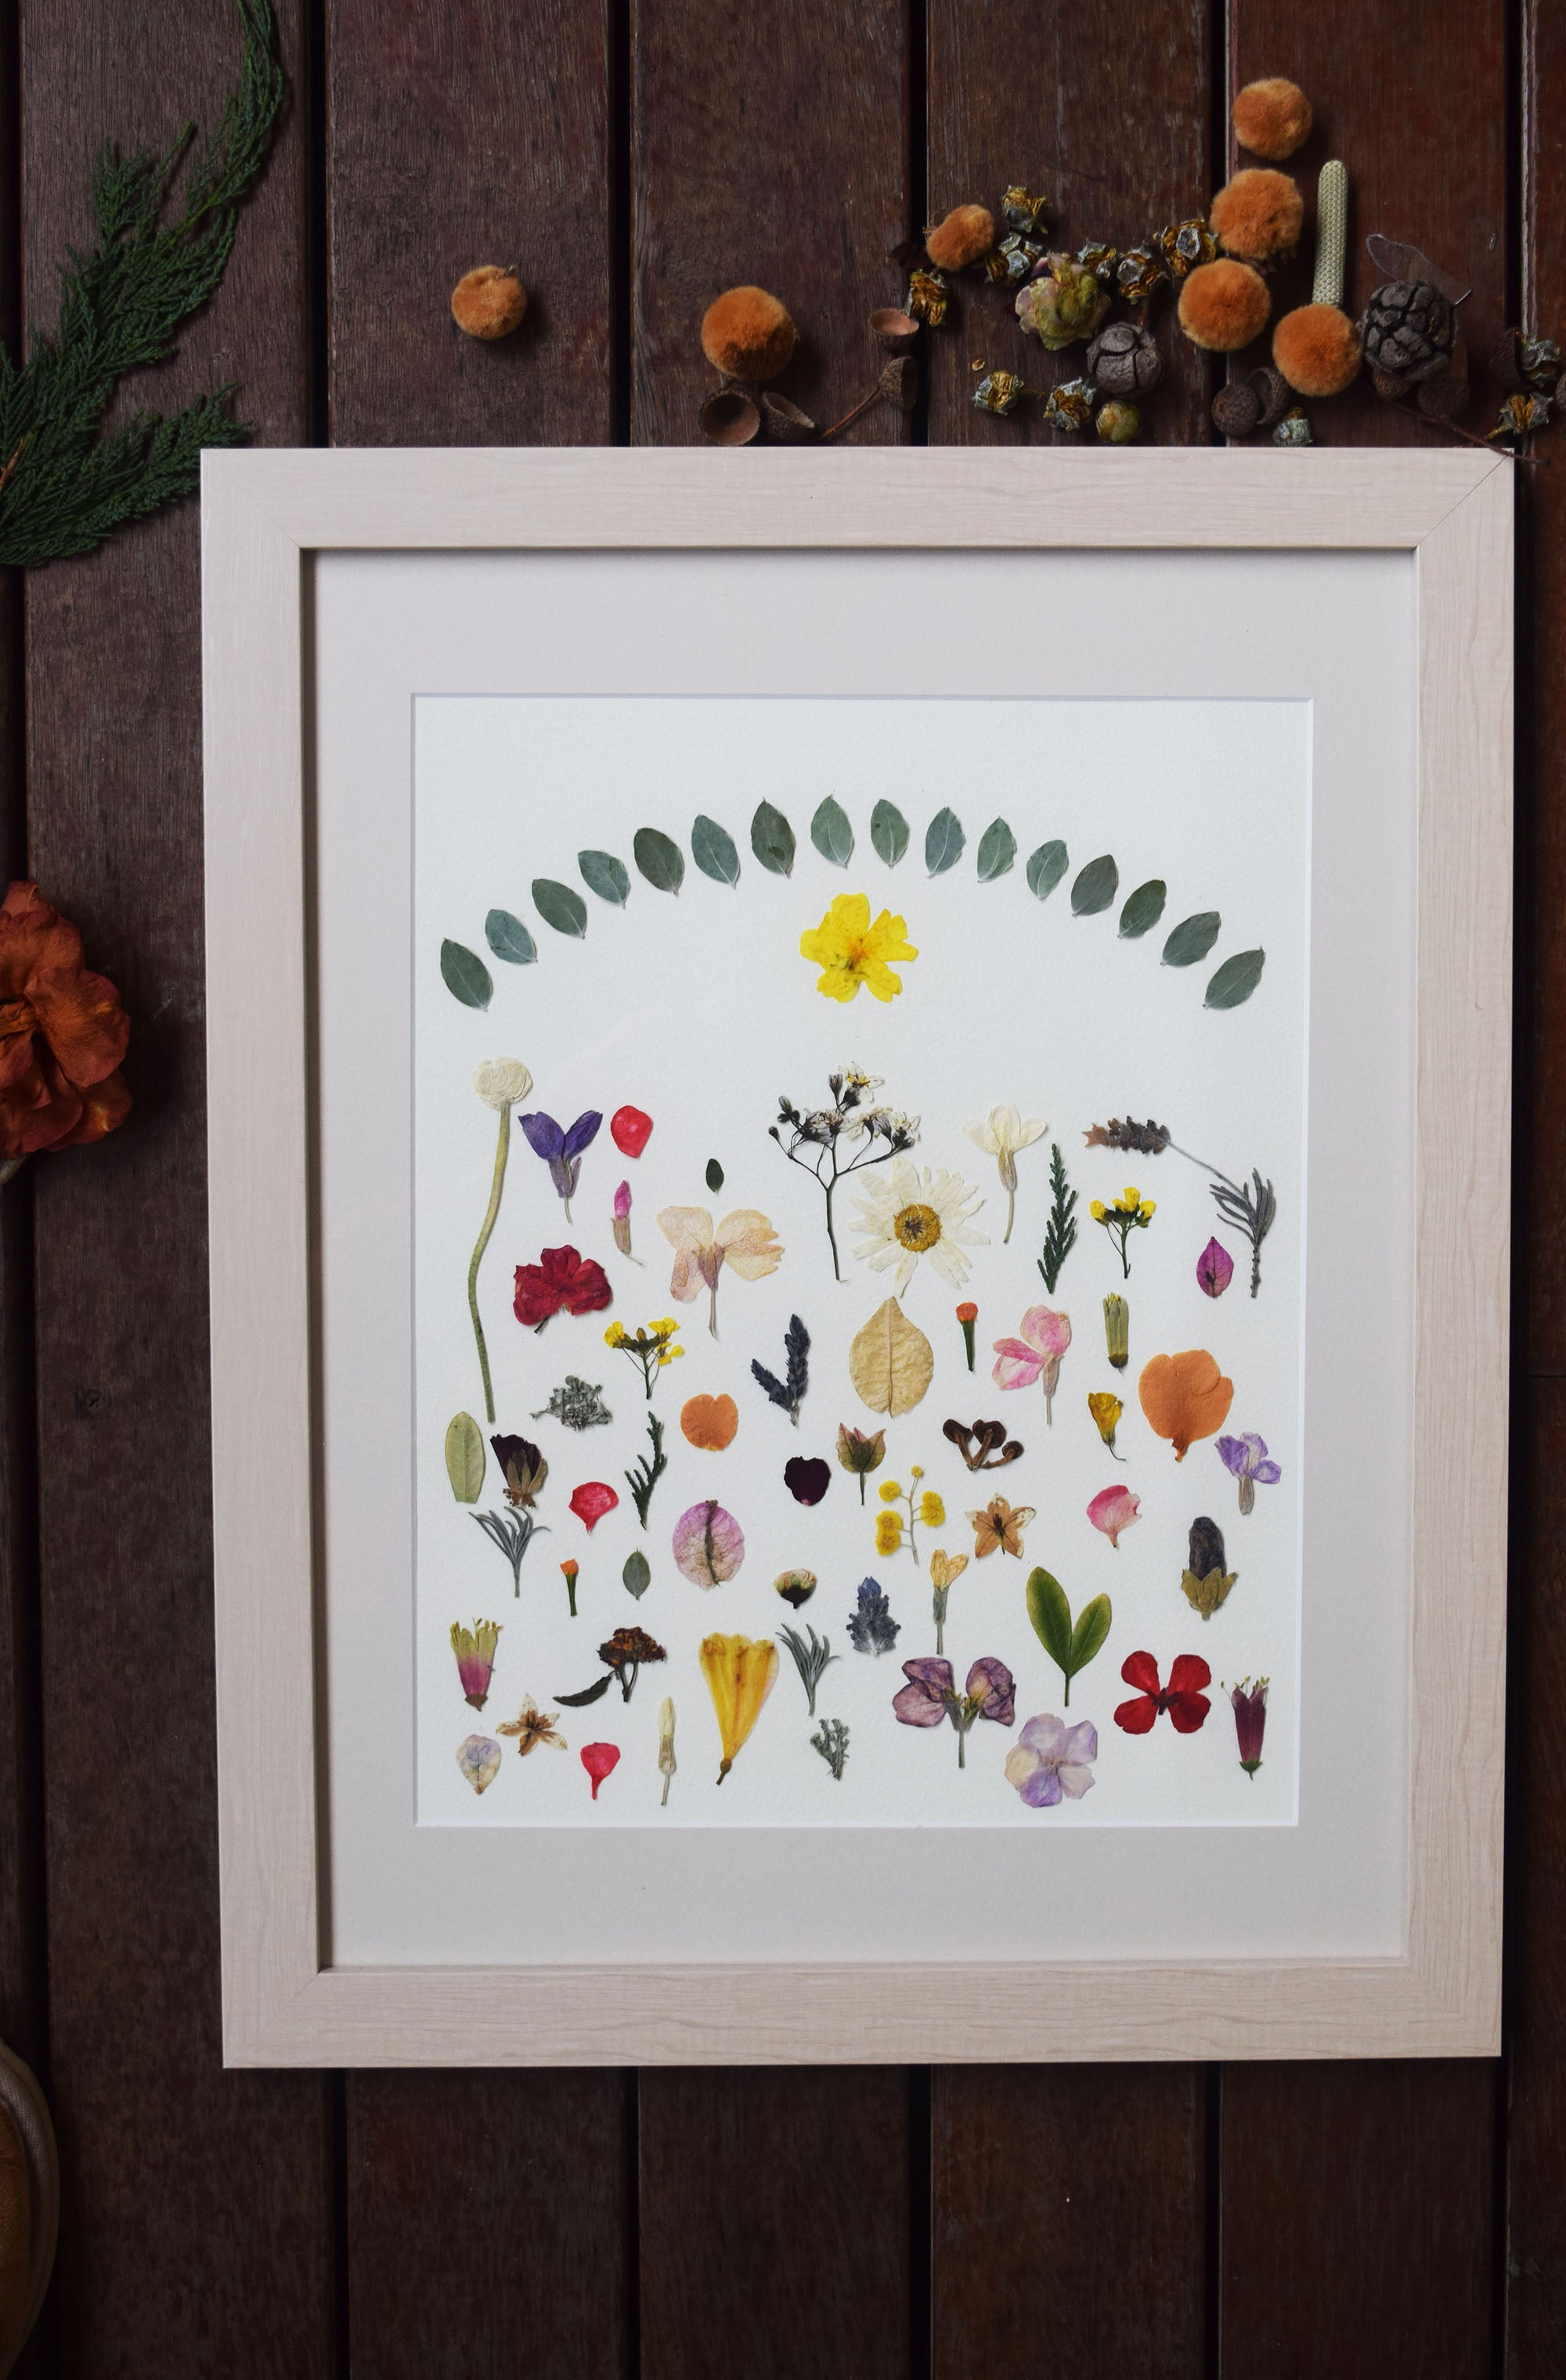 """Eden"" FRAMED HANDMADE PRESSED FLOWER ART 14X18"" - laflorproject"